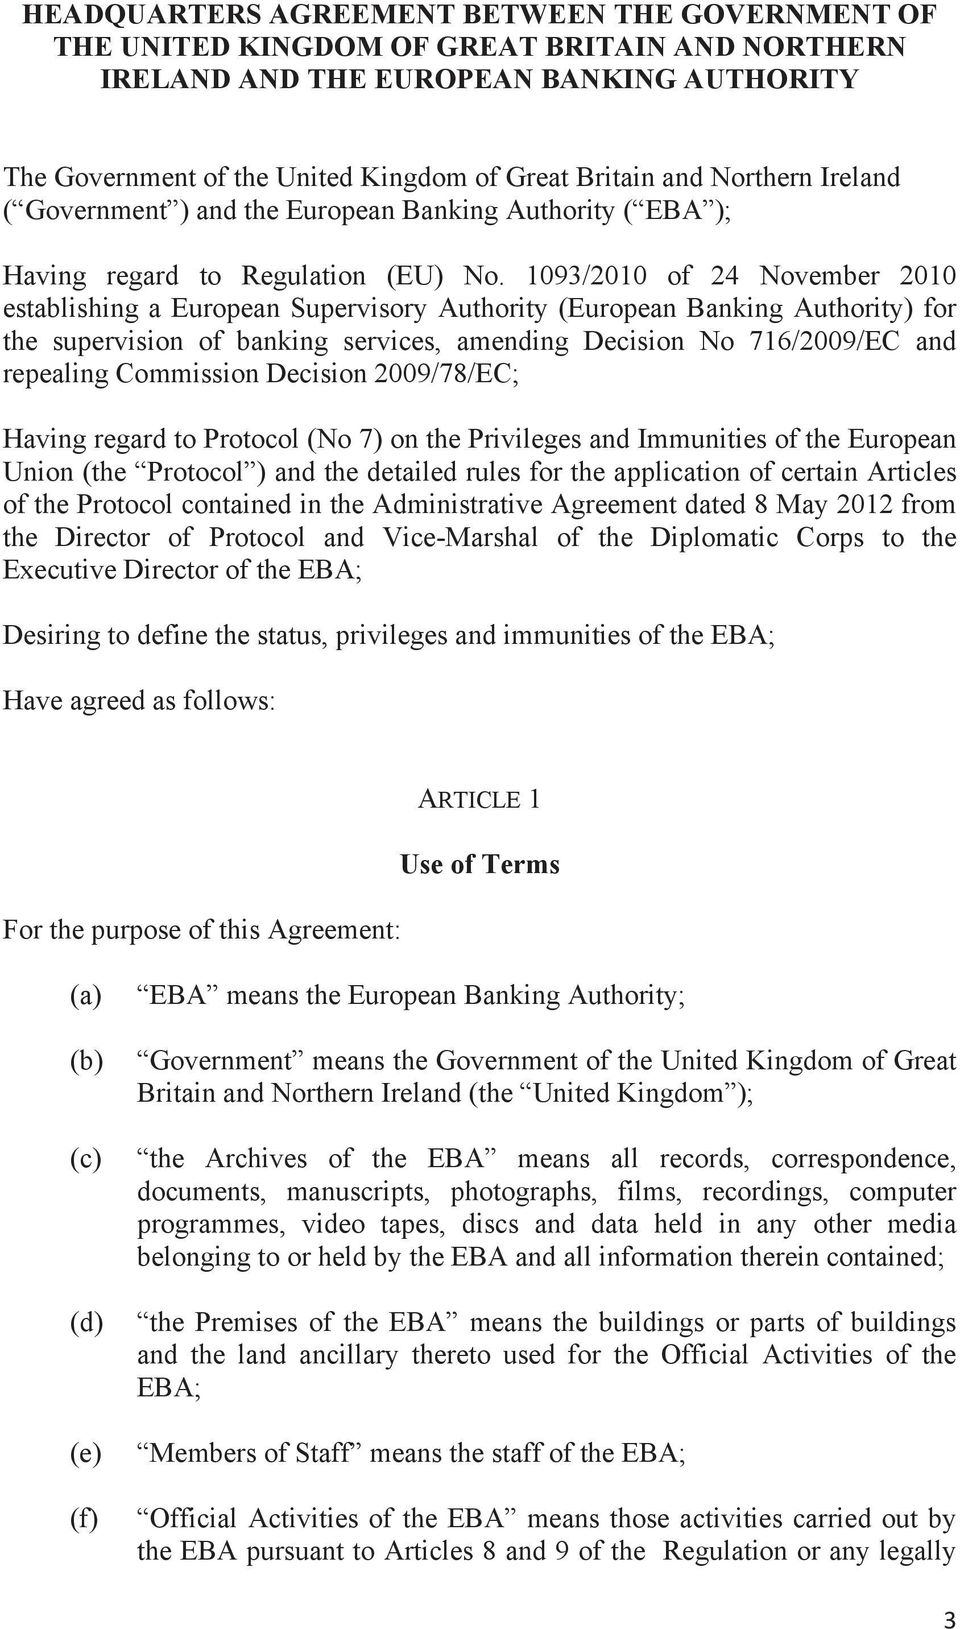 1093/2010 of 24 November 2010 establishing a European Supervisory Authority (European Banking Authority) for the supervision of banking services, amending Decision No 716/2009/EC and repealing